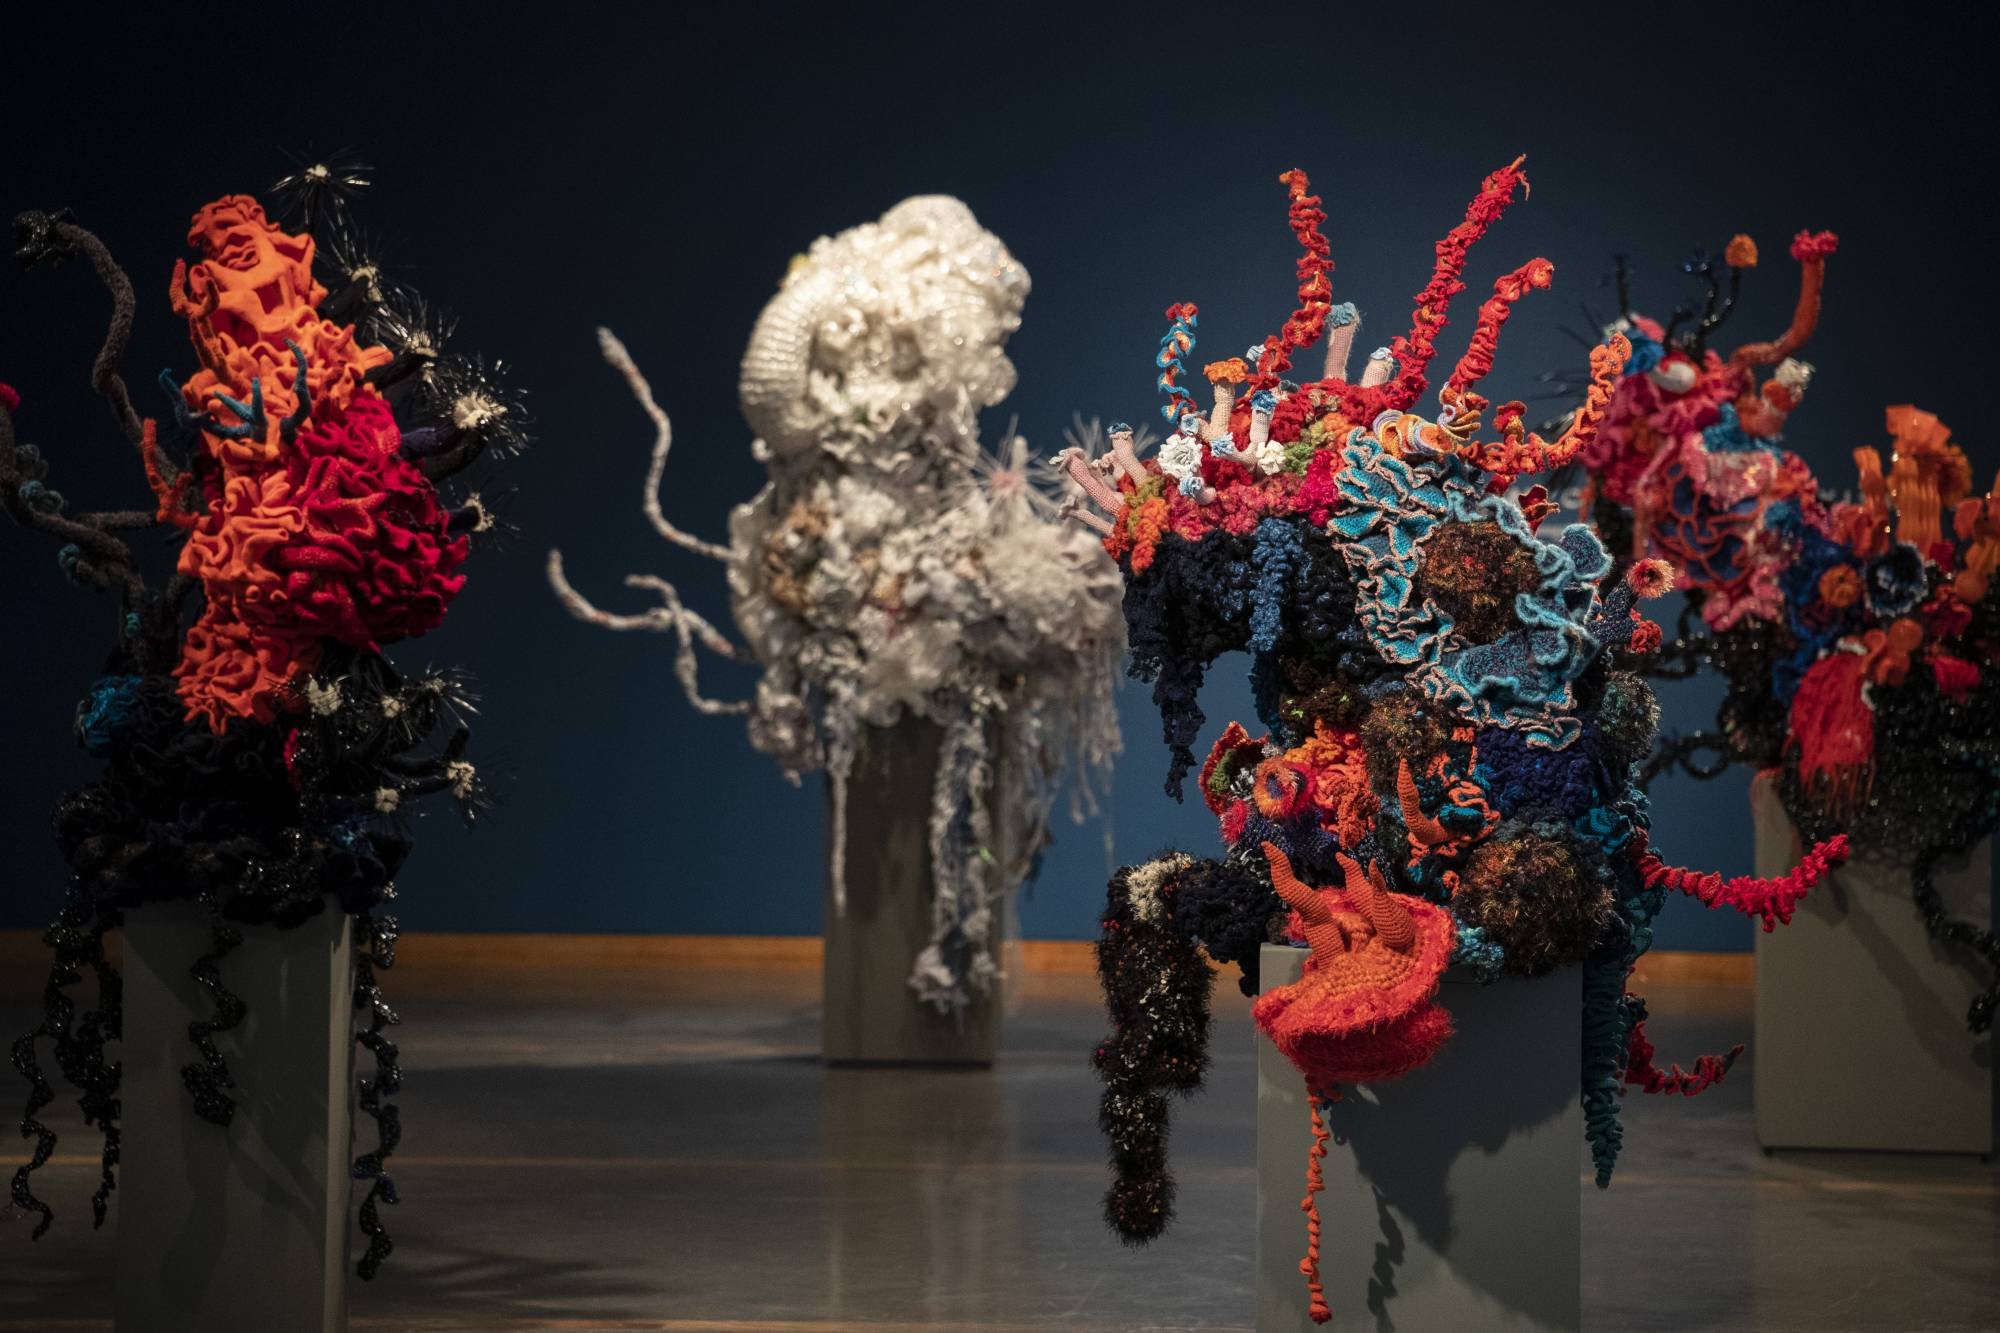 Giant co=richet sculptures made of yarn and plastic bags.